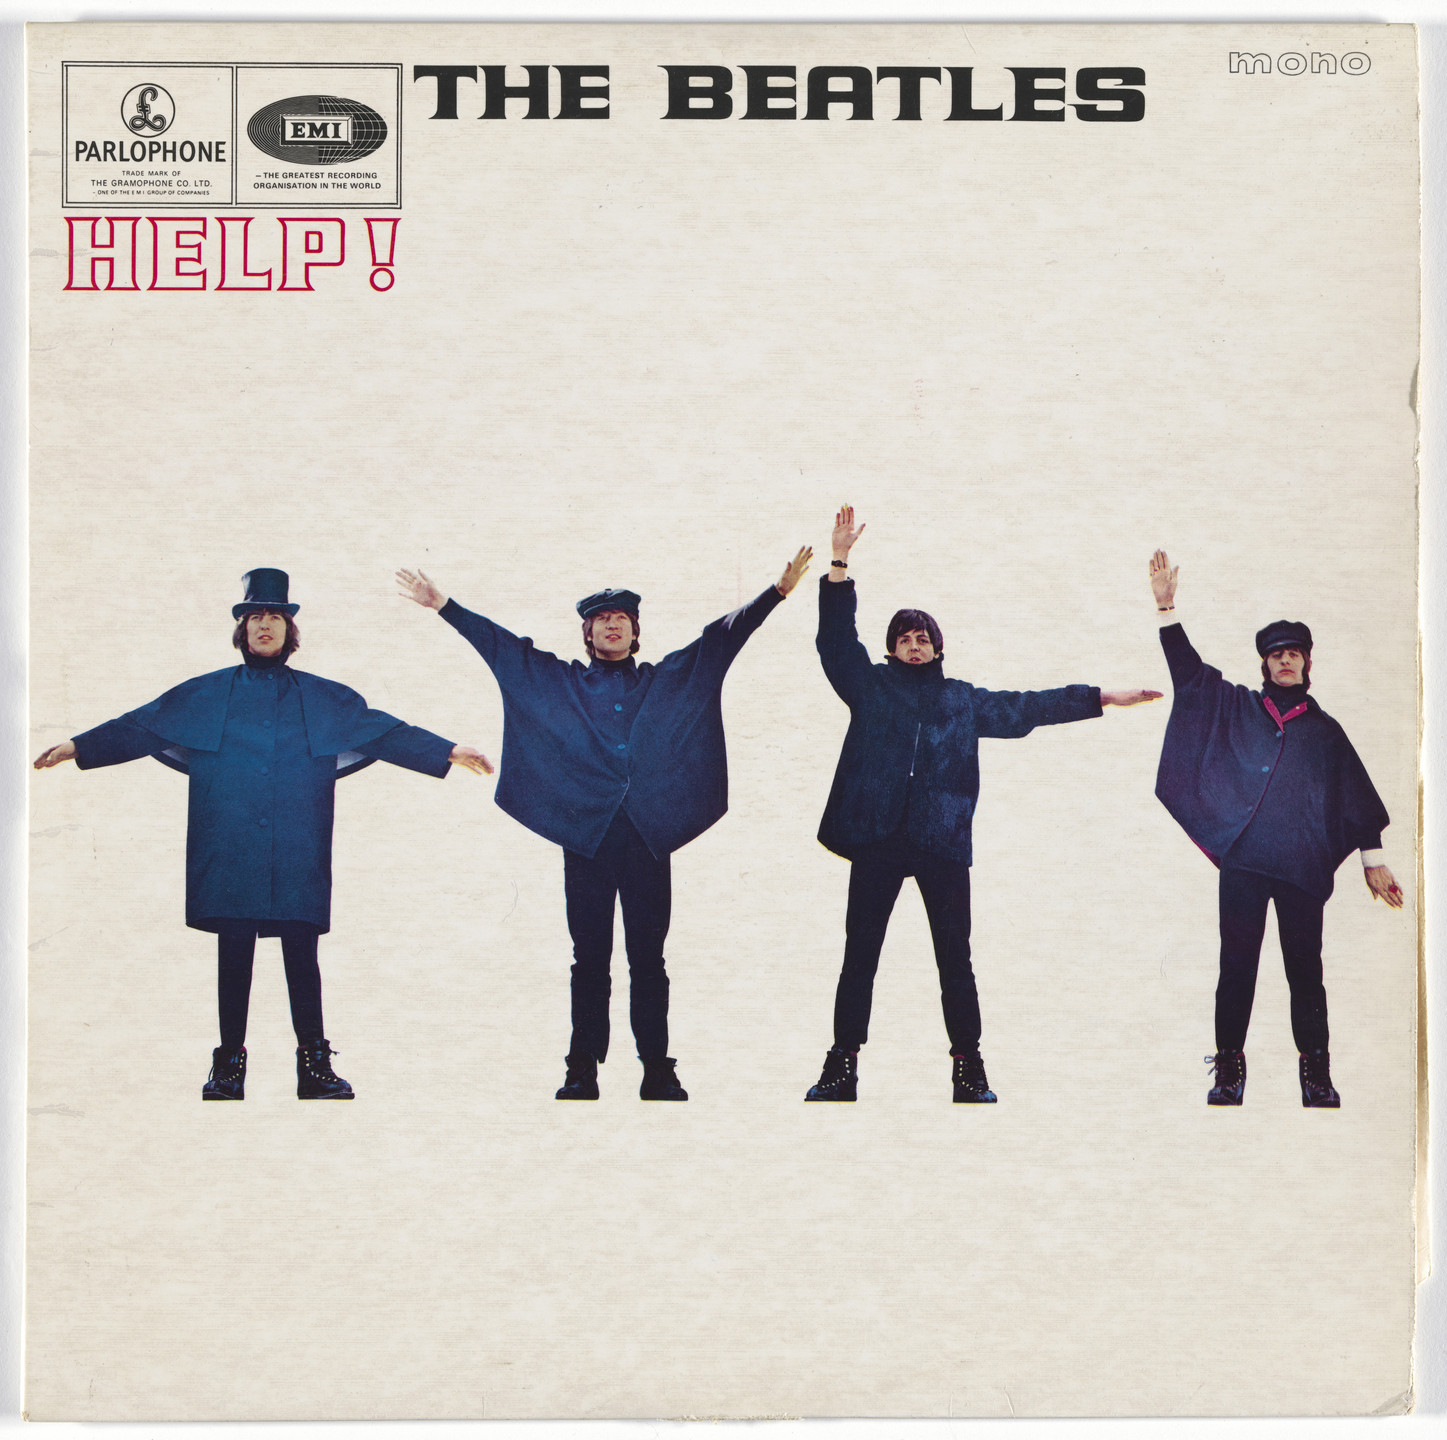 Robert Freeman, Parlophone Records. Album cover for The Beatles, Help!. 1965